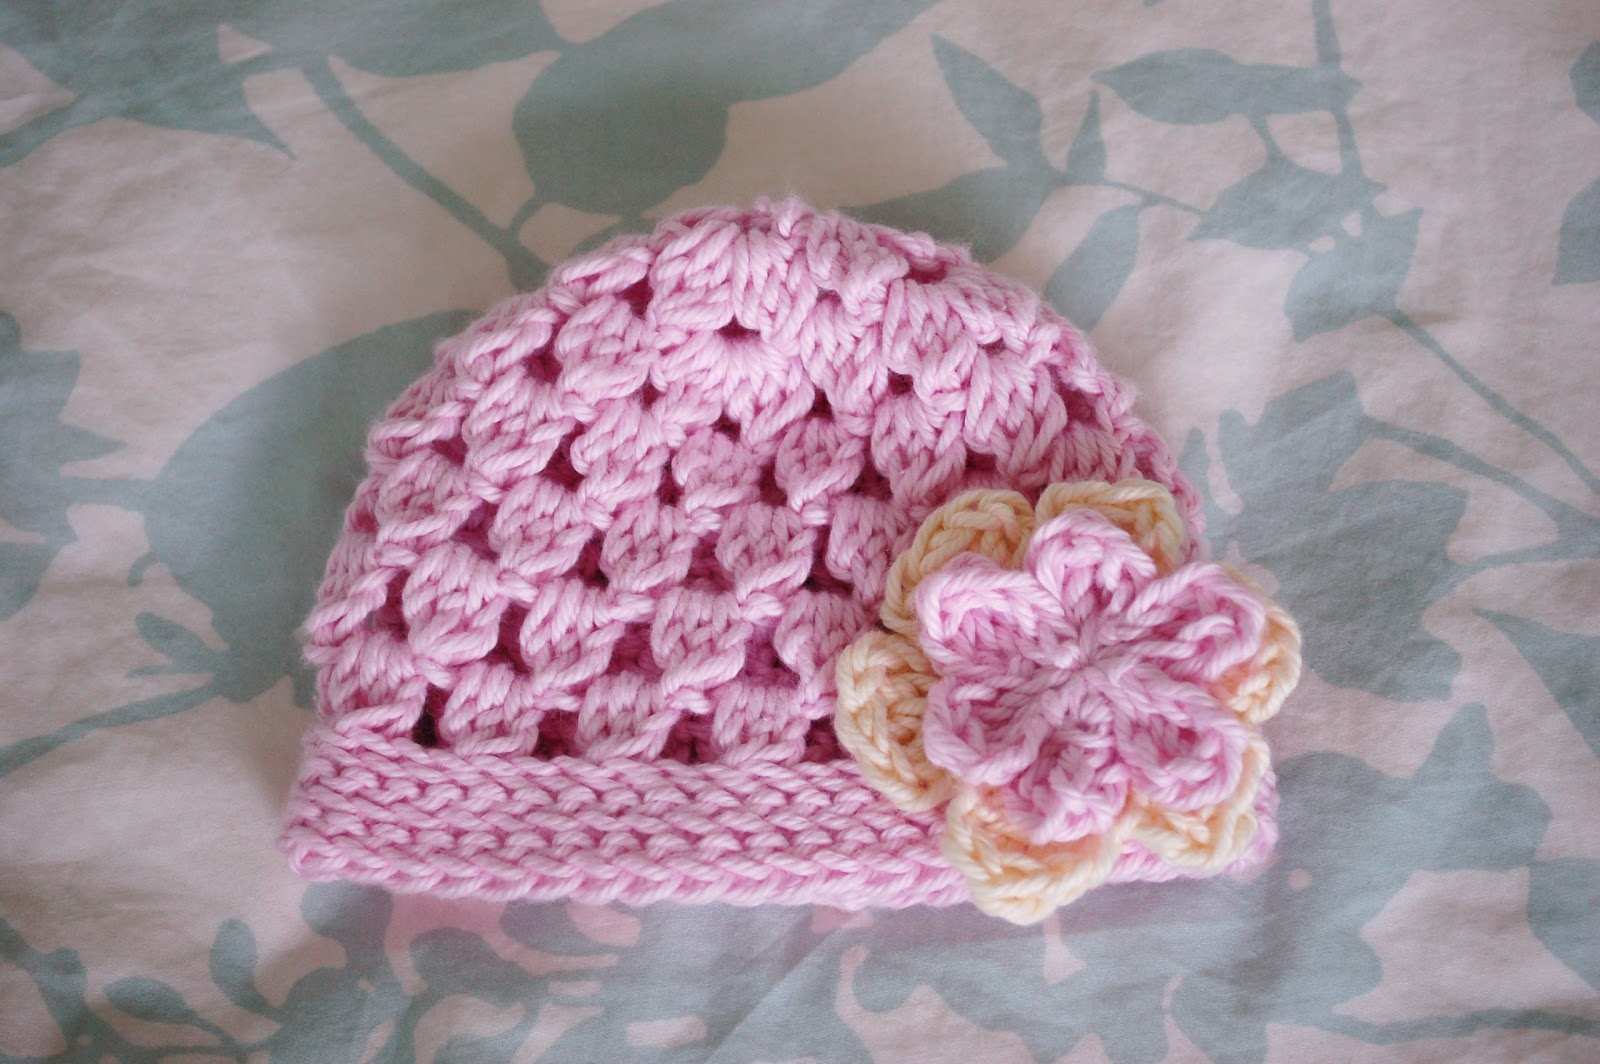 Crochet Beginning Patterns : BEANIE CROCHET PATTERNS ? Crochet For Beginners